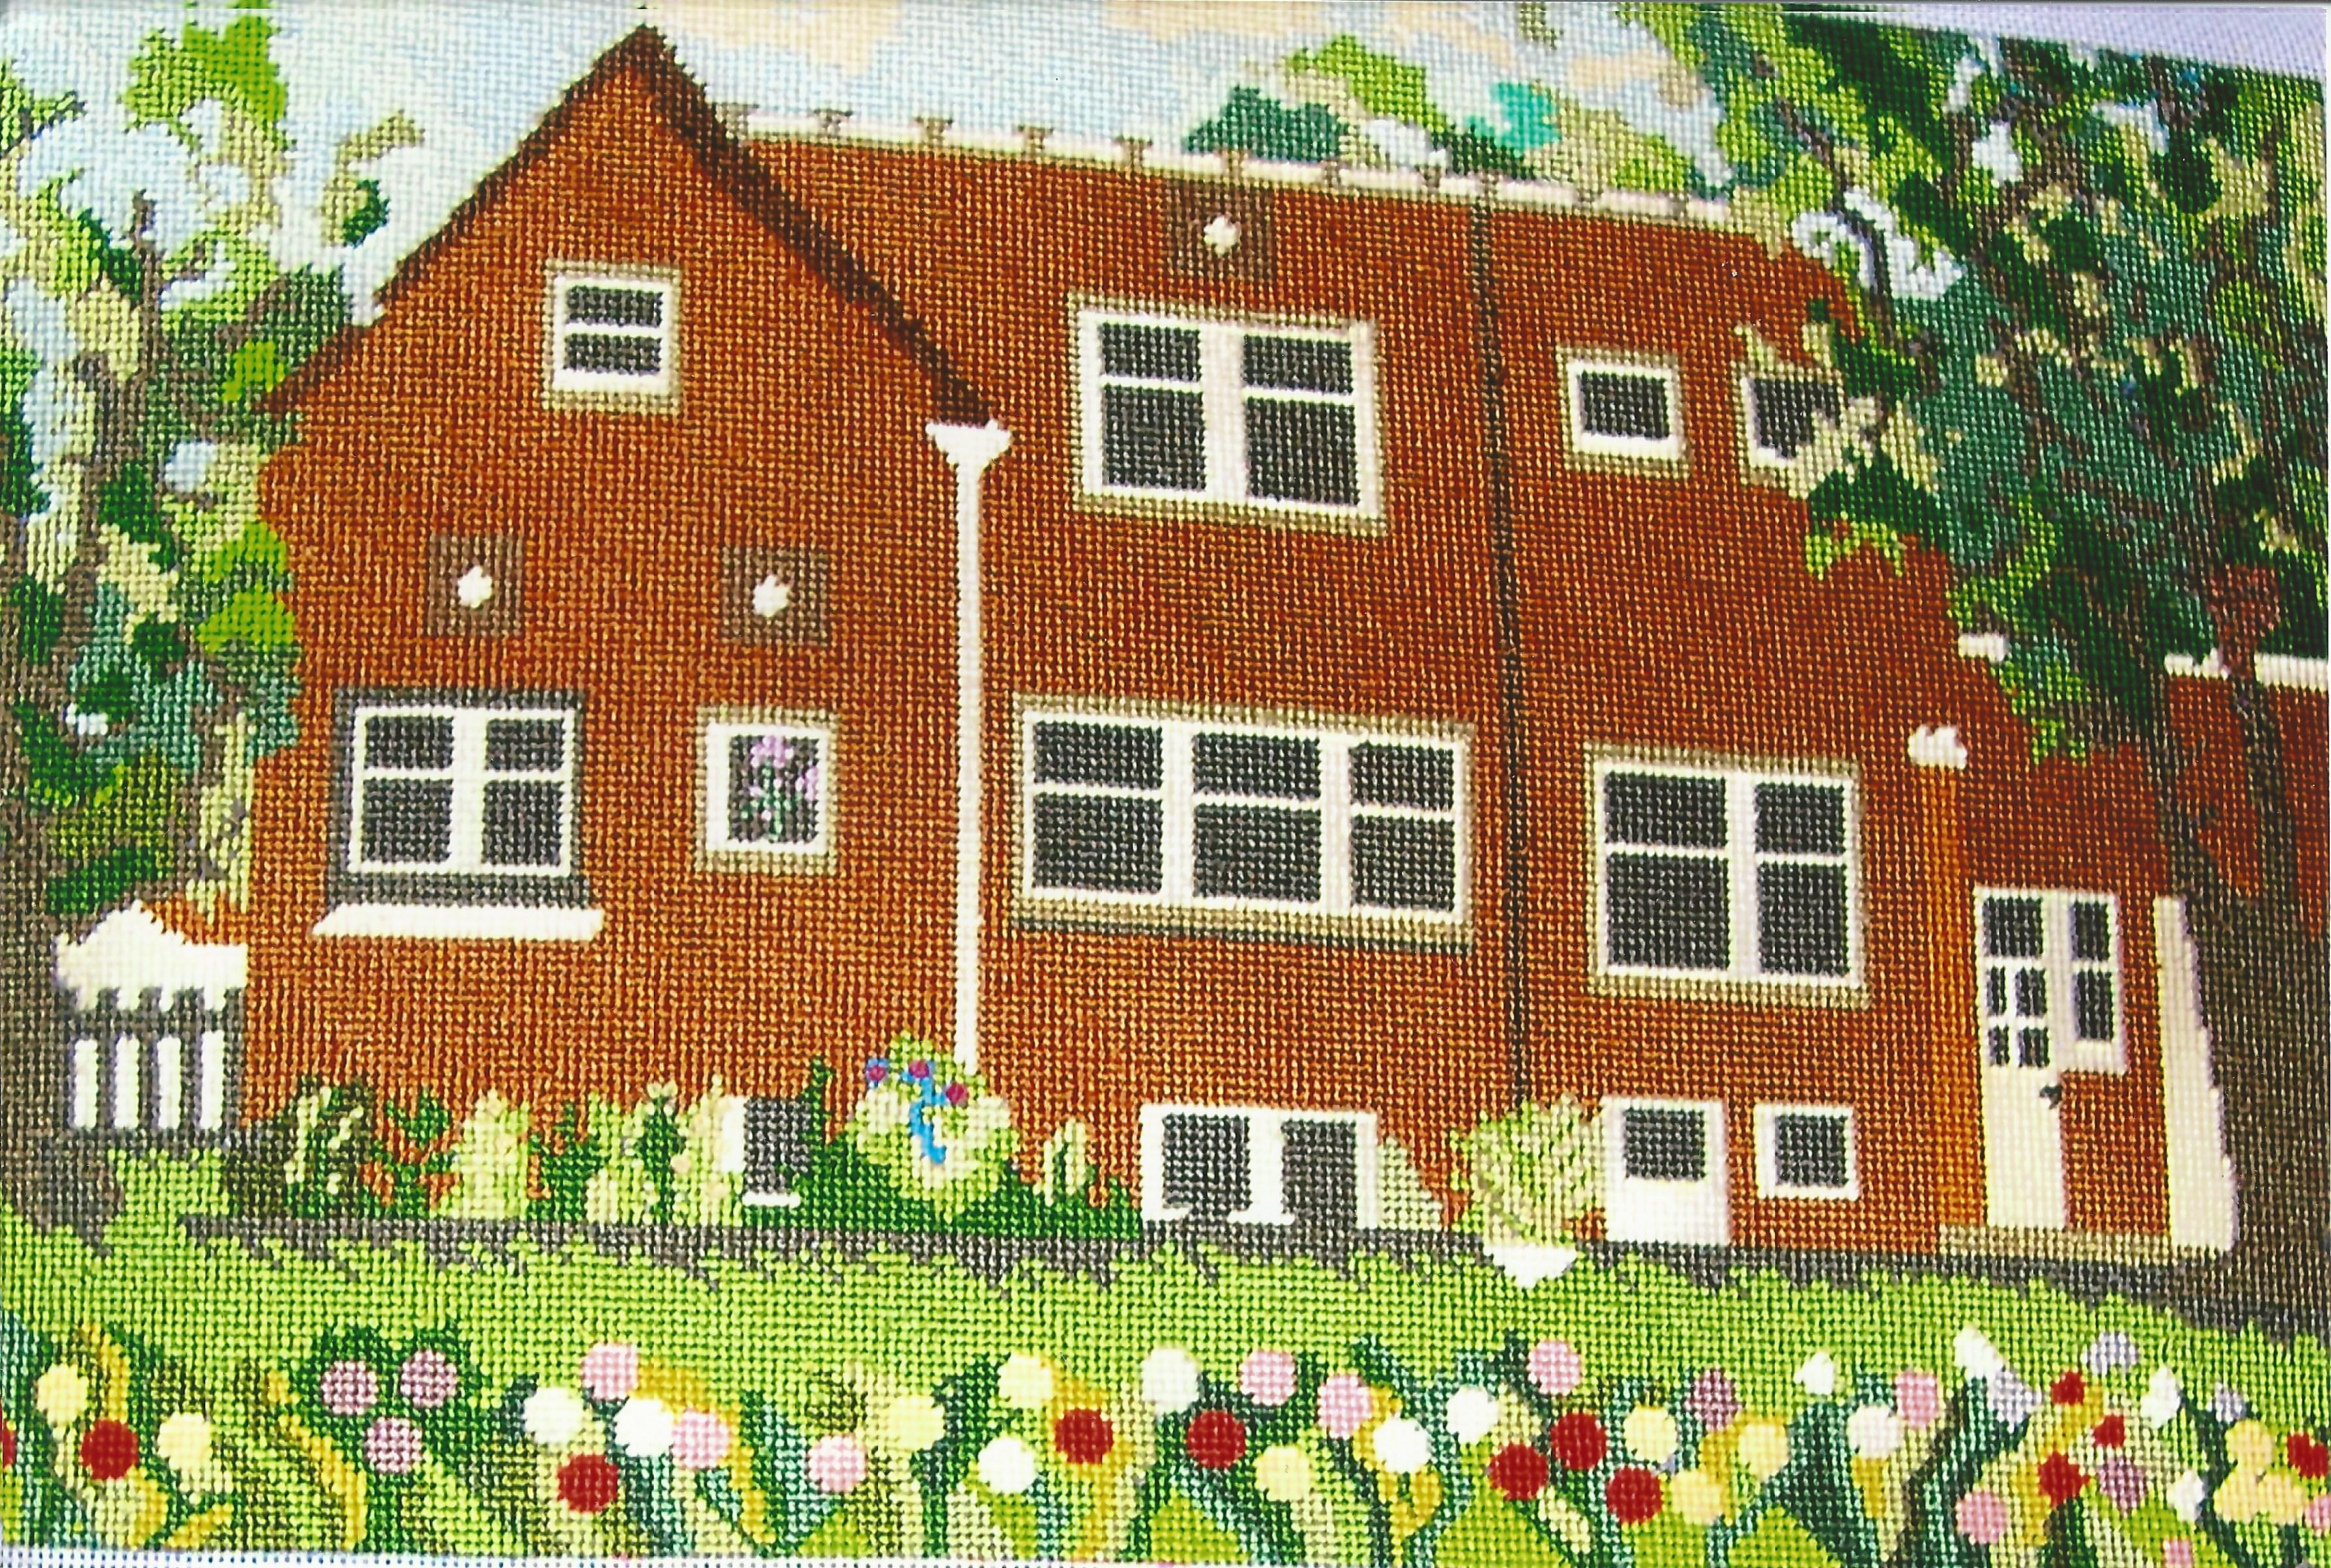 Grandma's House Needlepoint 18 x 11.7 inches on 14 mesh canvas